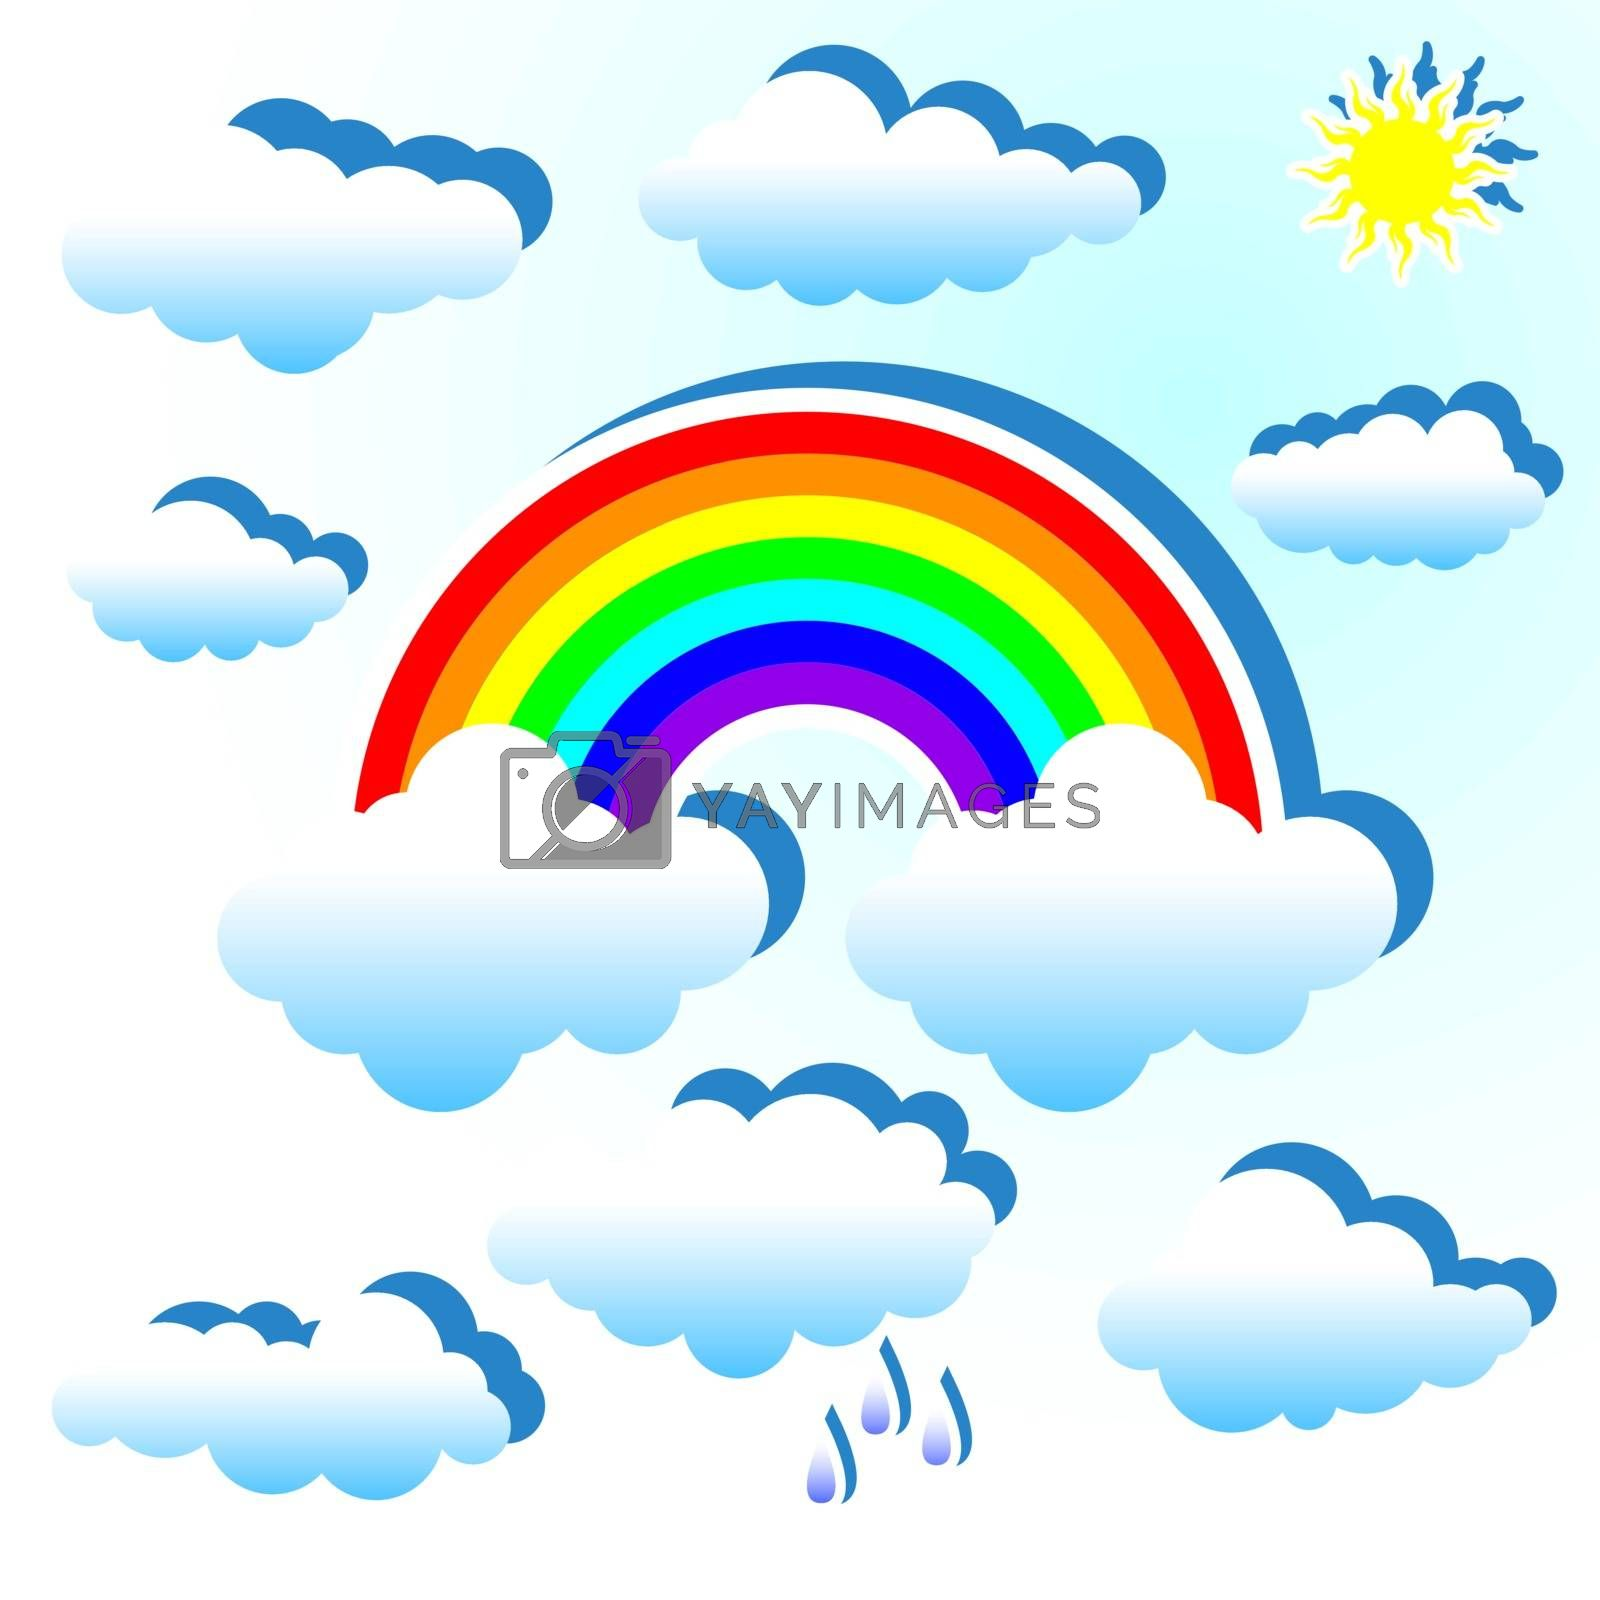 Clouds and rainbow by liolle